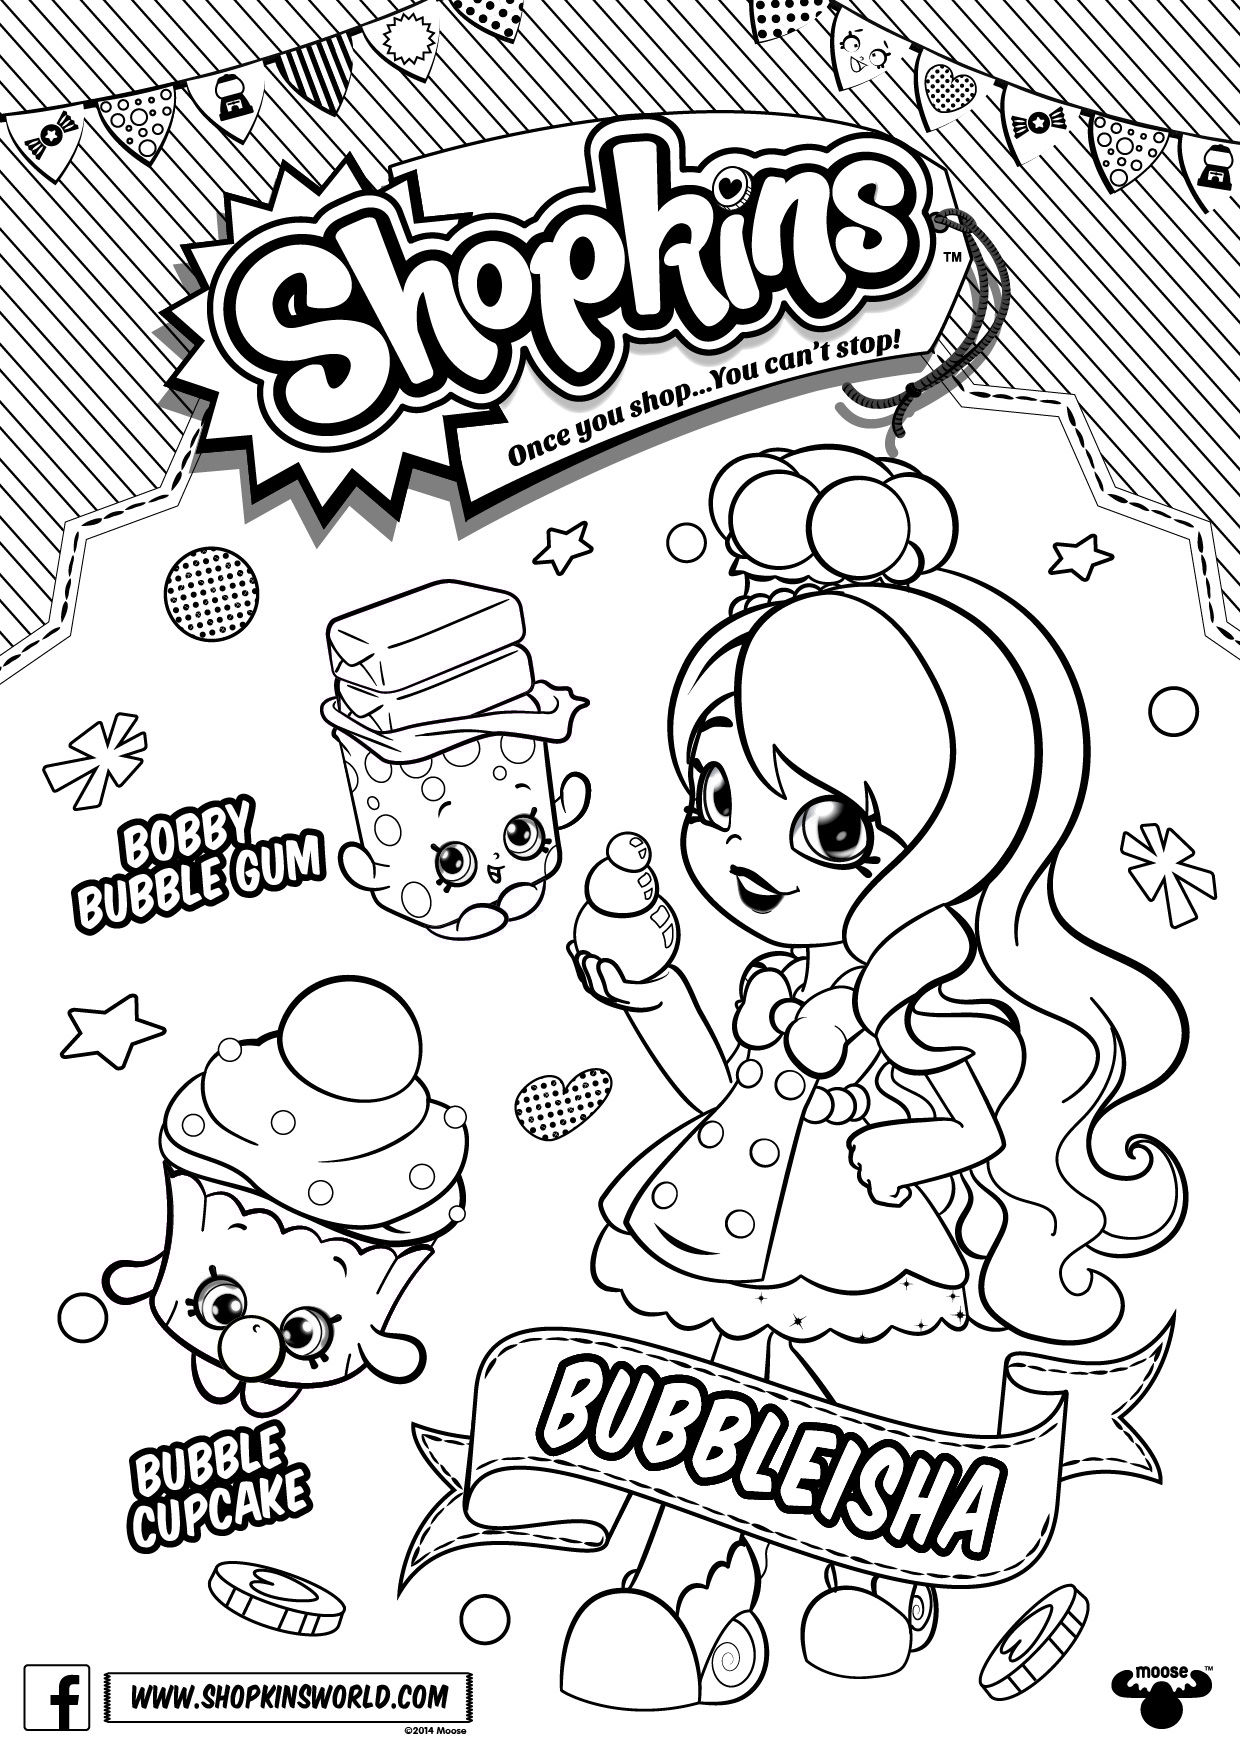 Shopkins coloring pages season 5 shopkins awesome printable coloring - Shopkins Doll Chef Club Colour In Page Bubbleleisha